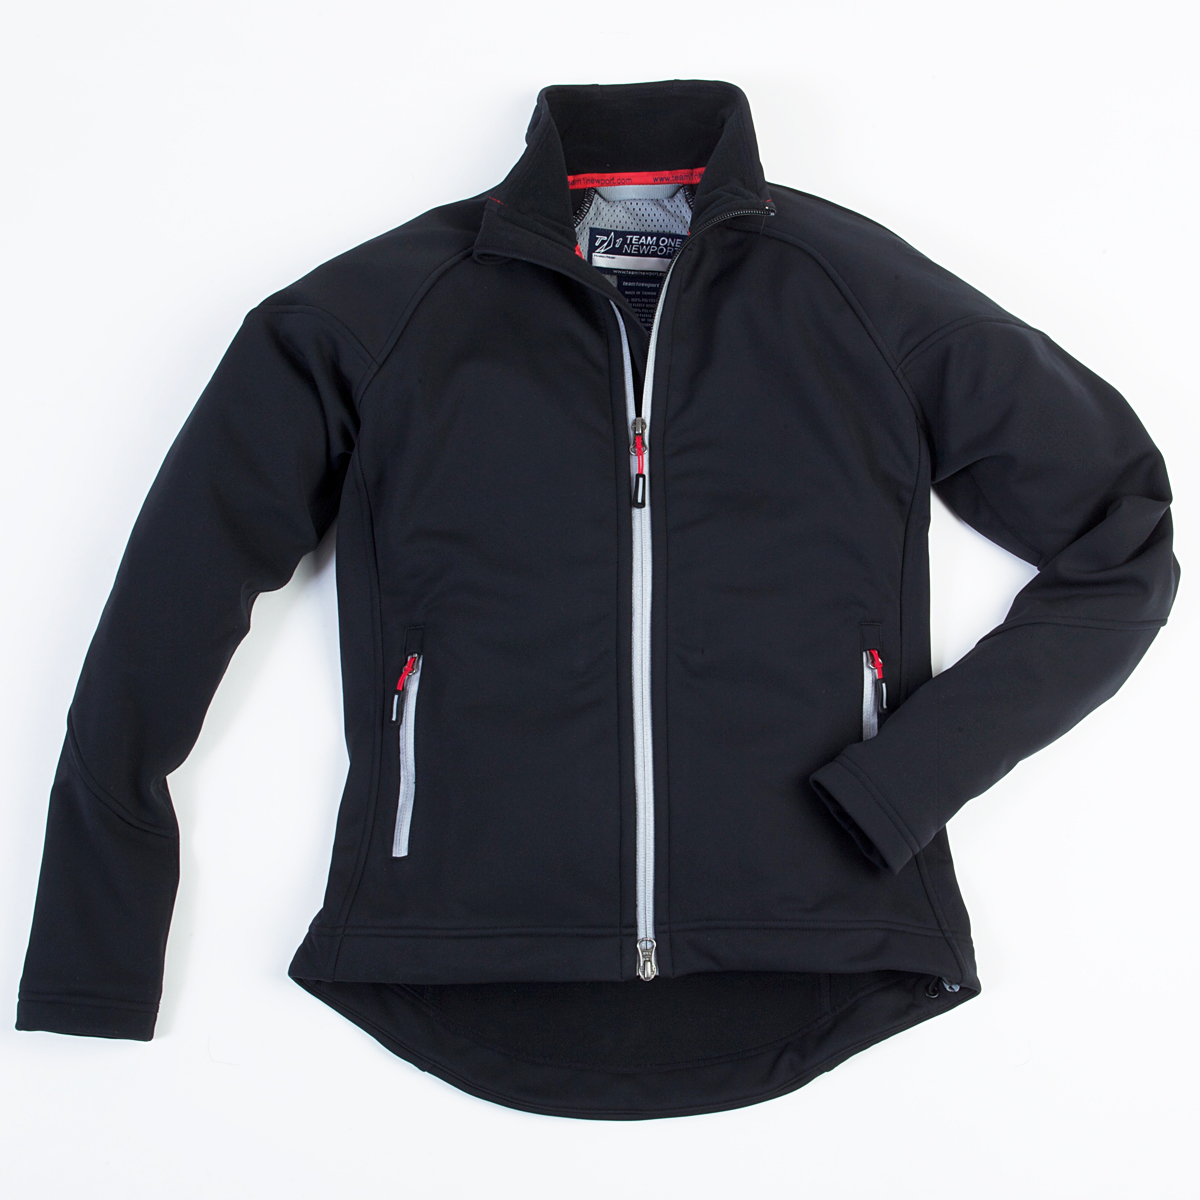 TEAM ONE NEWPORT WOMENS SCRAMBLER JACKET (41001)